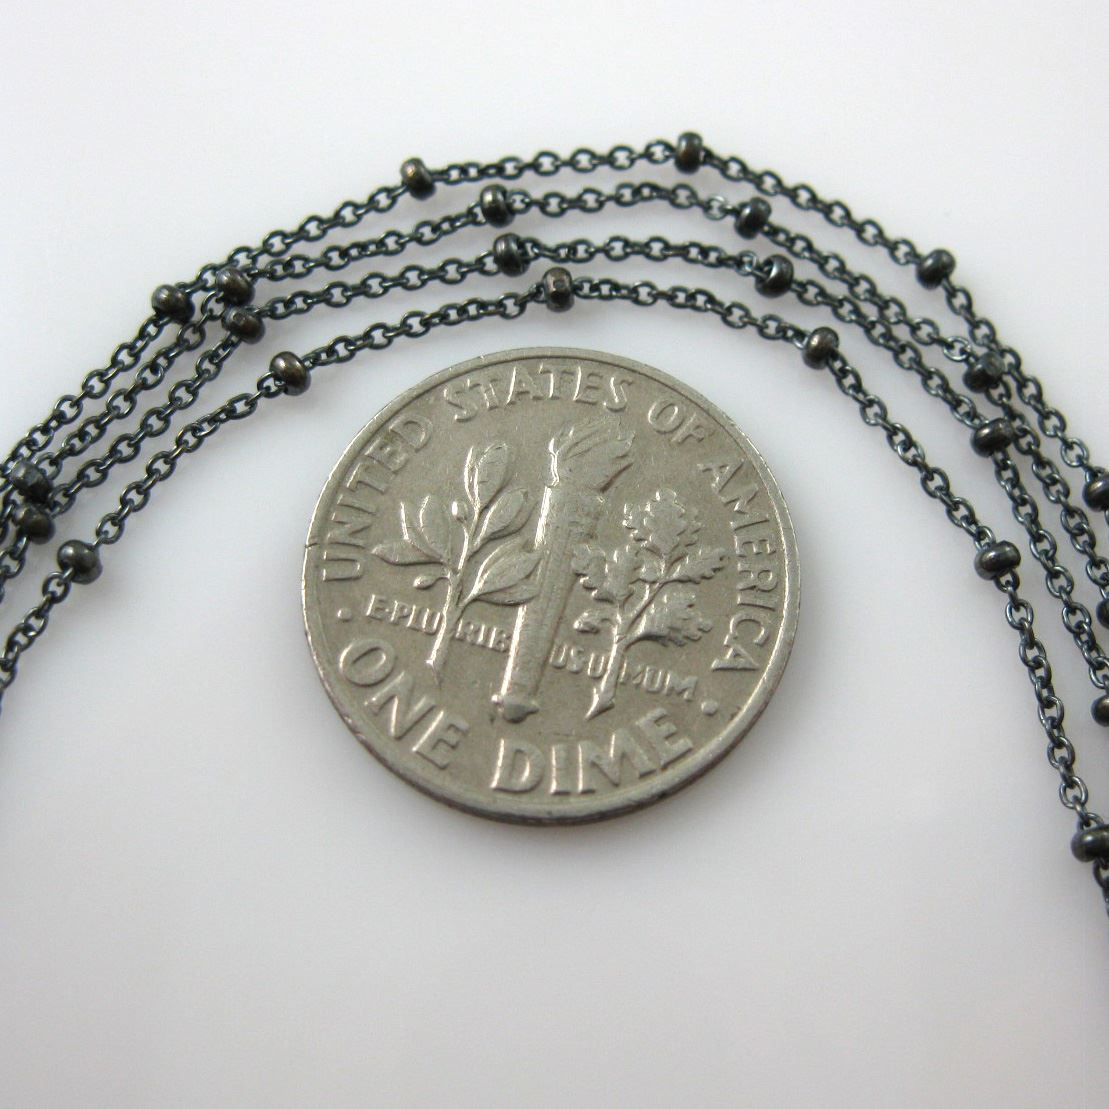 Oxidized Sterling Silver Chain-Beaded Cable Chain-Satellite Chain-1.4X1.6 Cable Oval+Ball Chain - Unfinished Bulk Chain (by the foot)